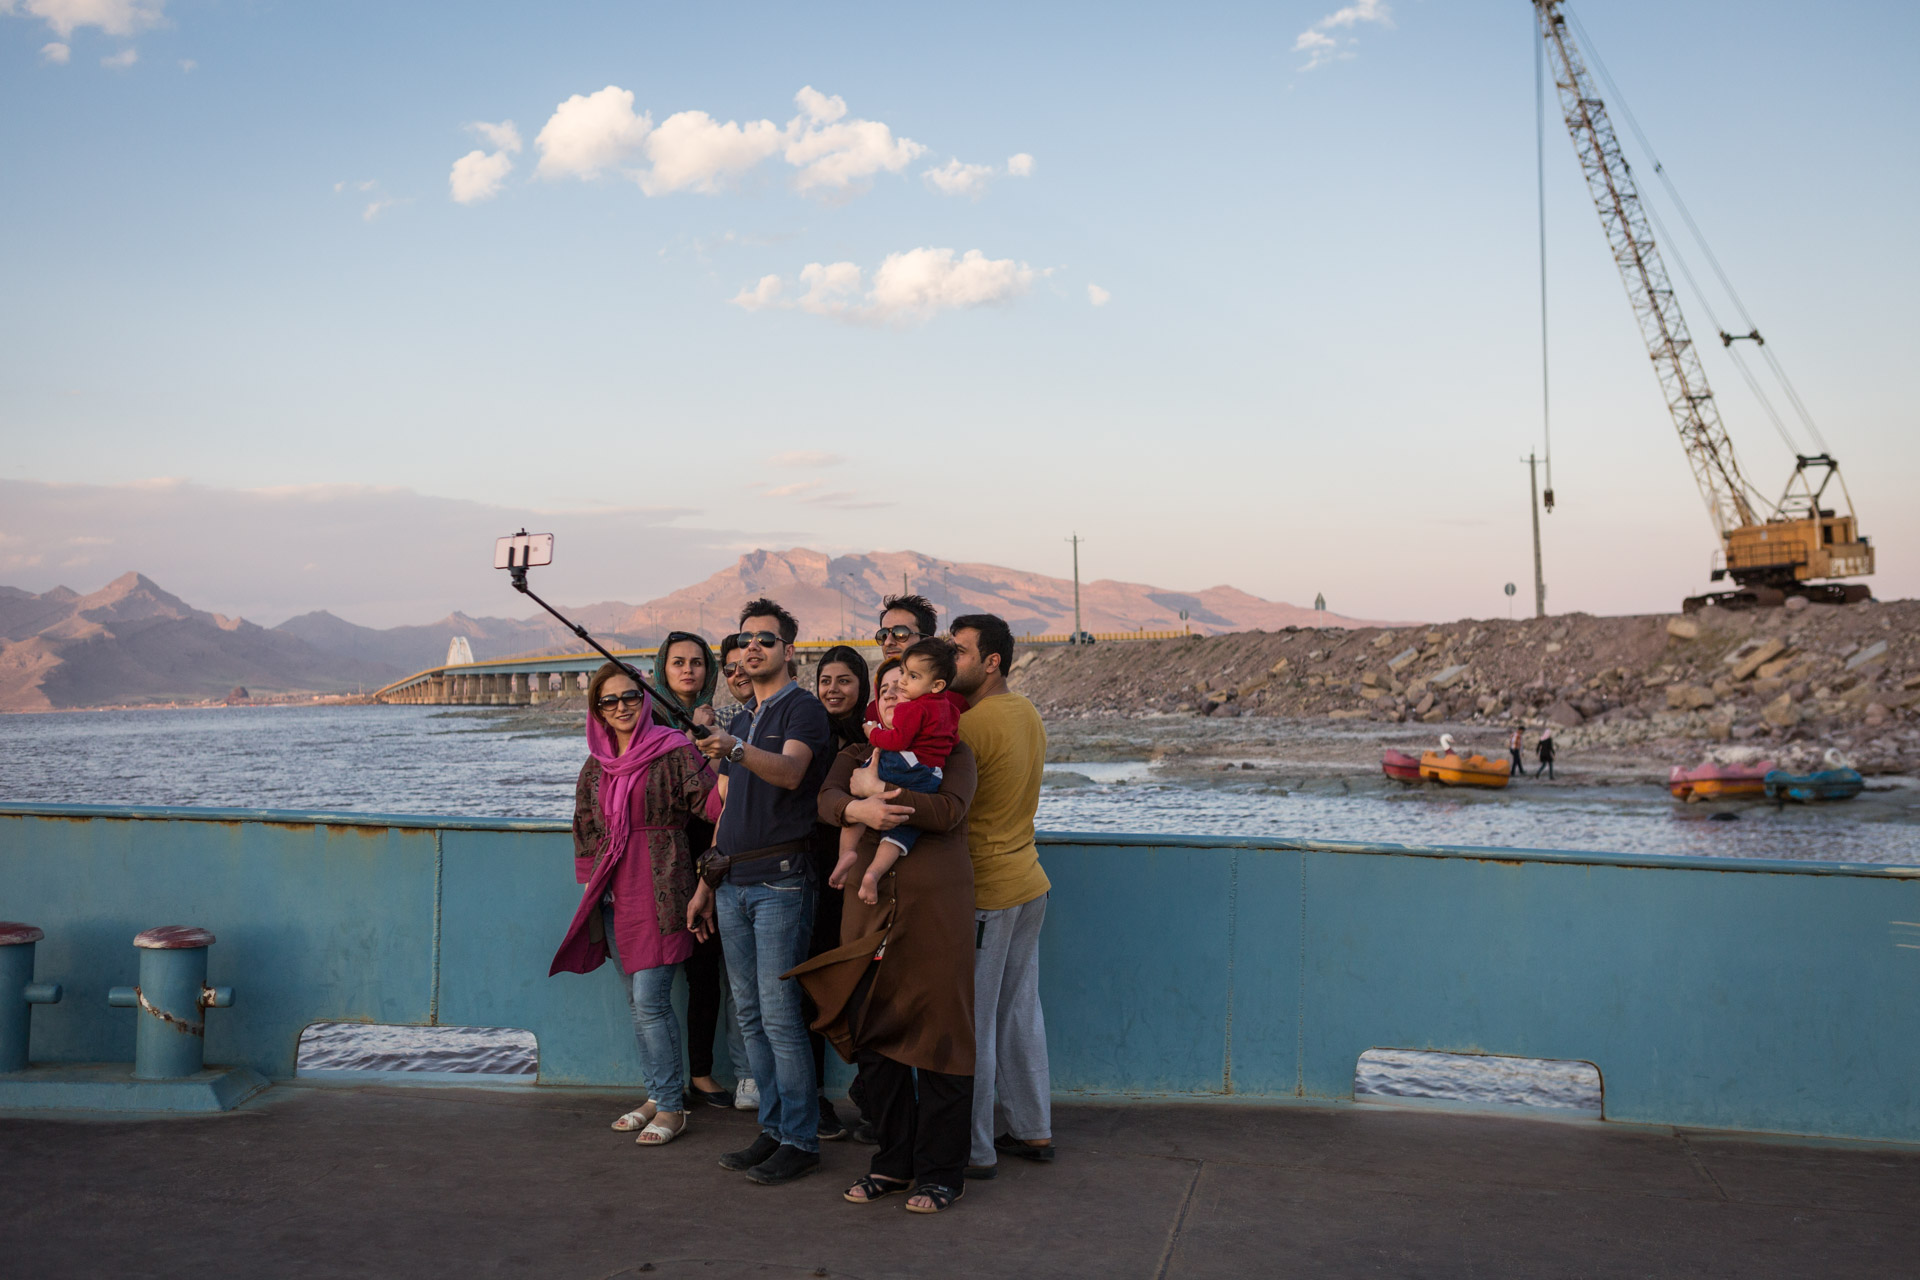 A group of young Iranians take a selfie, the bridge crossing the lake in the background.